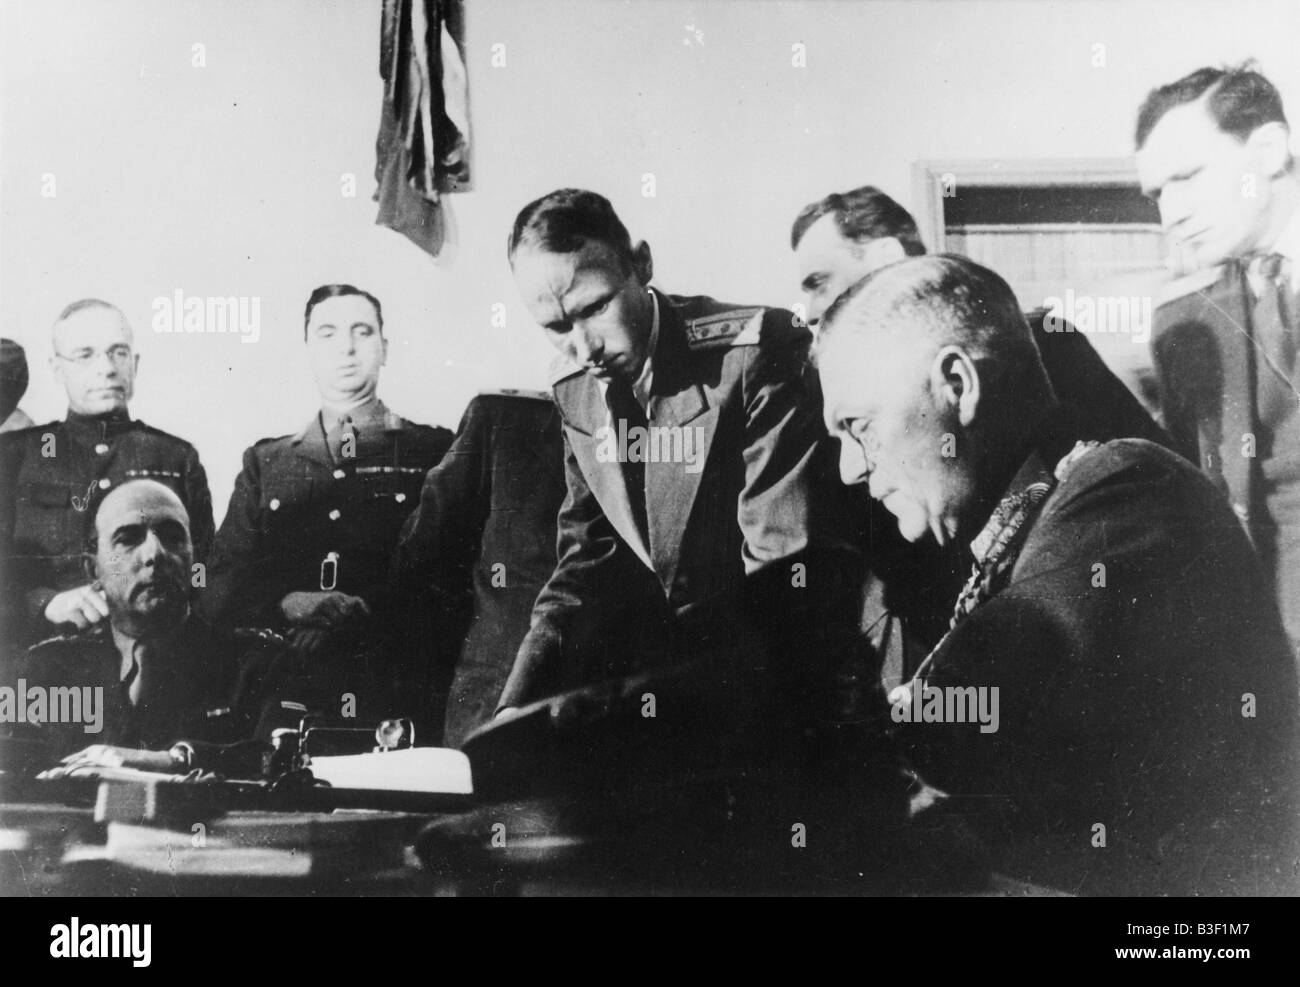 WW2/German Surrender/Berlin/Keitel. - Stock Image